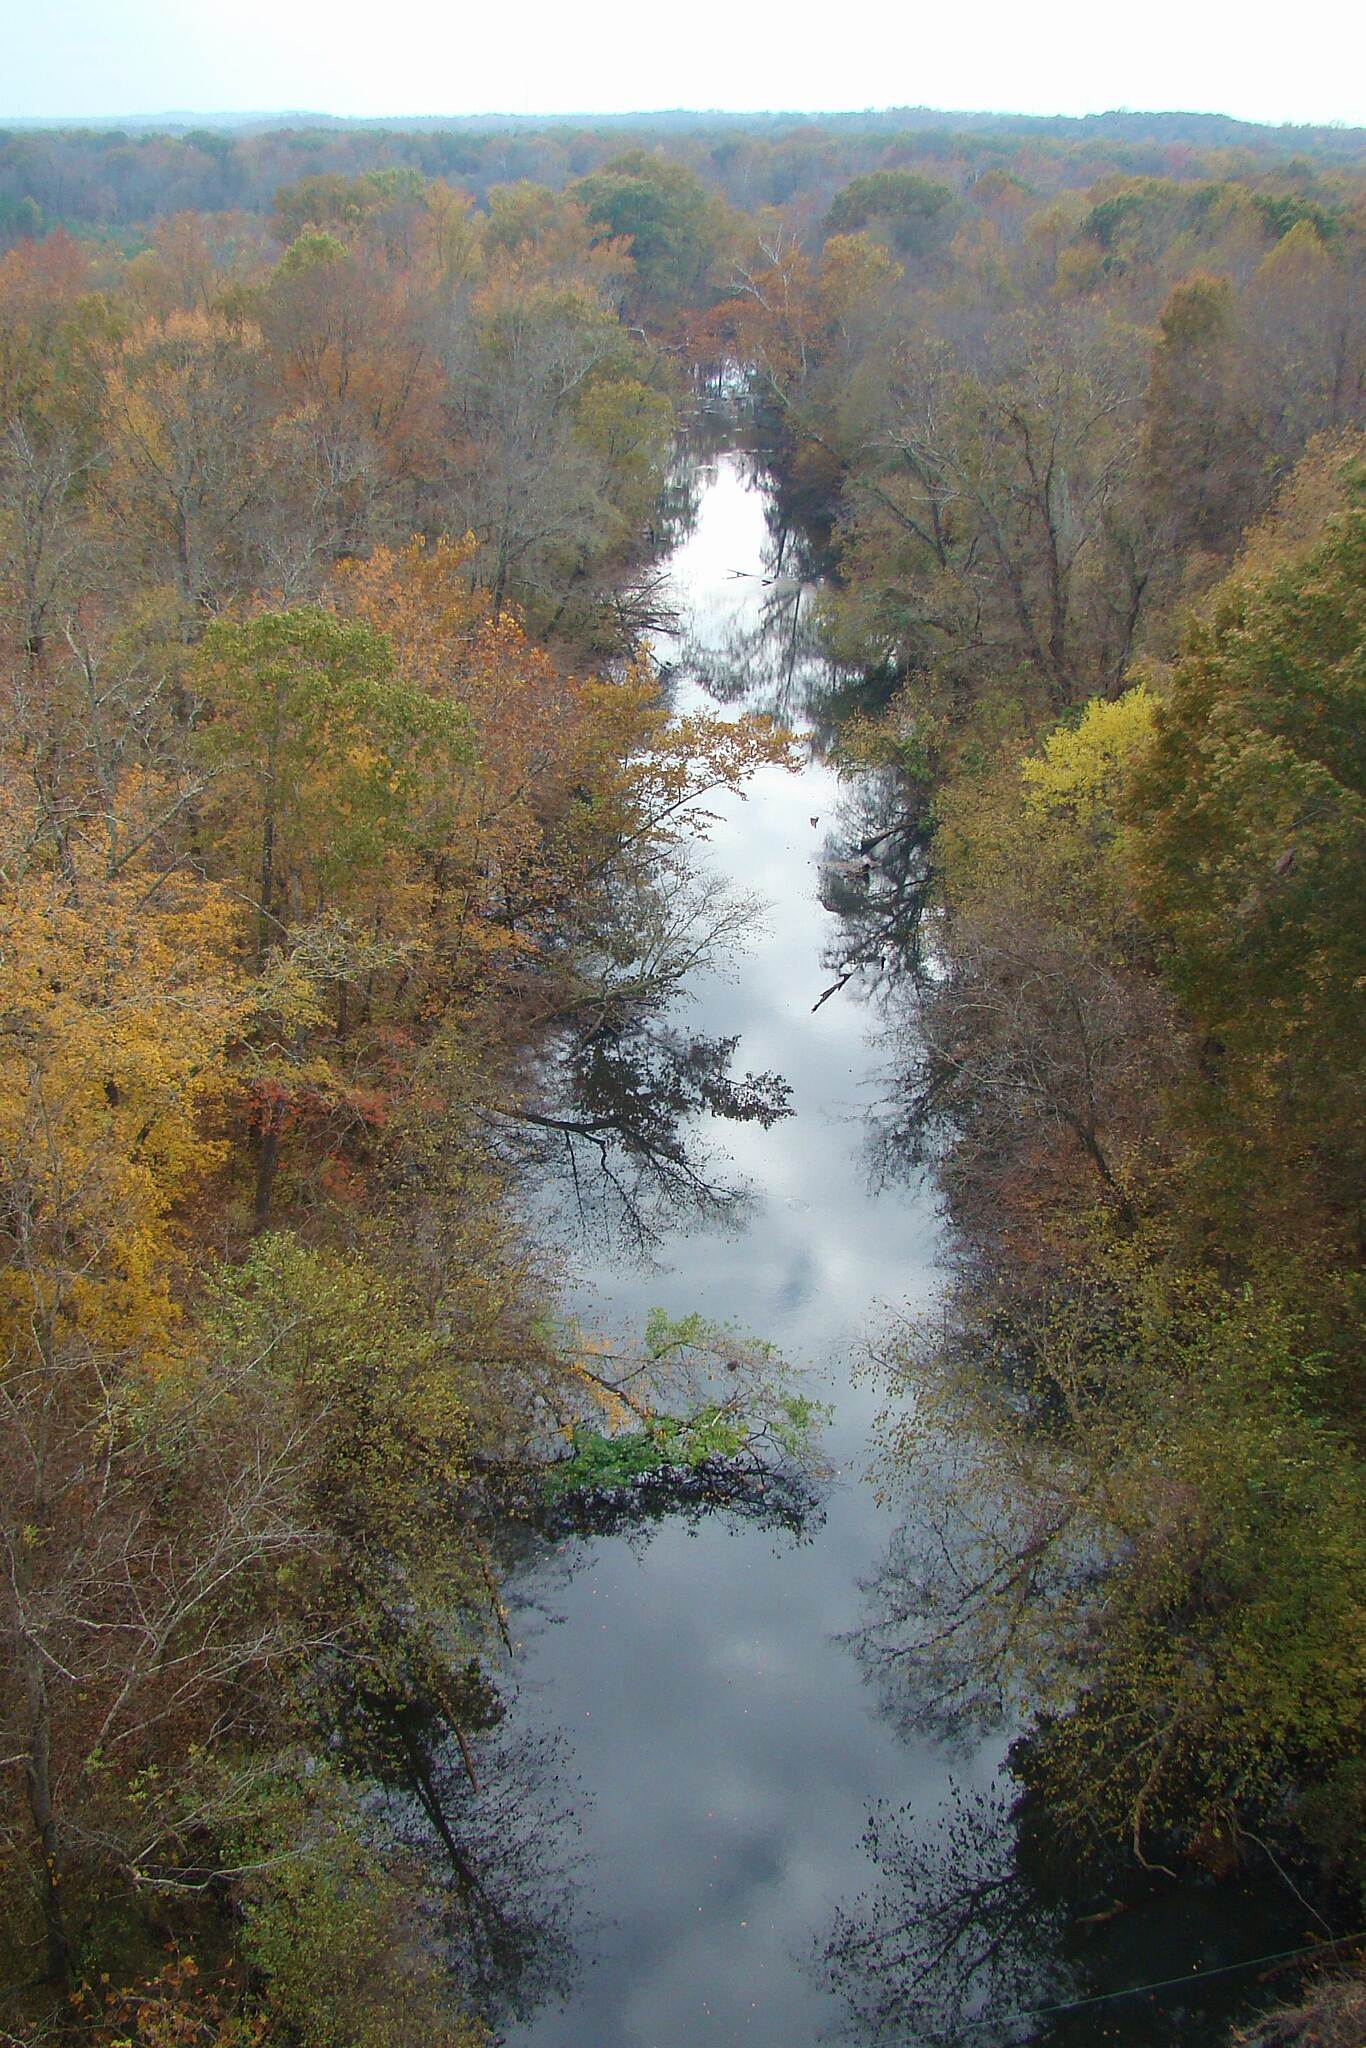 High Bridge Trail Appomattox River Looking south from the bridge downdown to the Appomattox River, 10/30/13